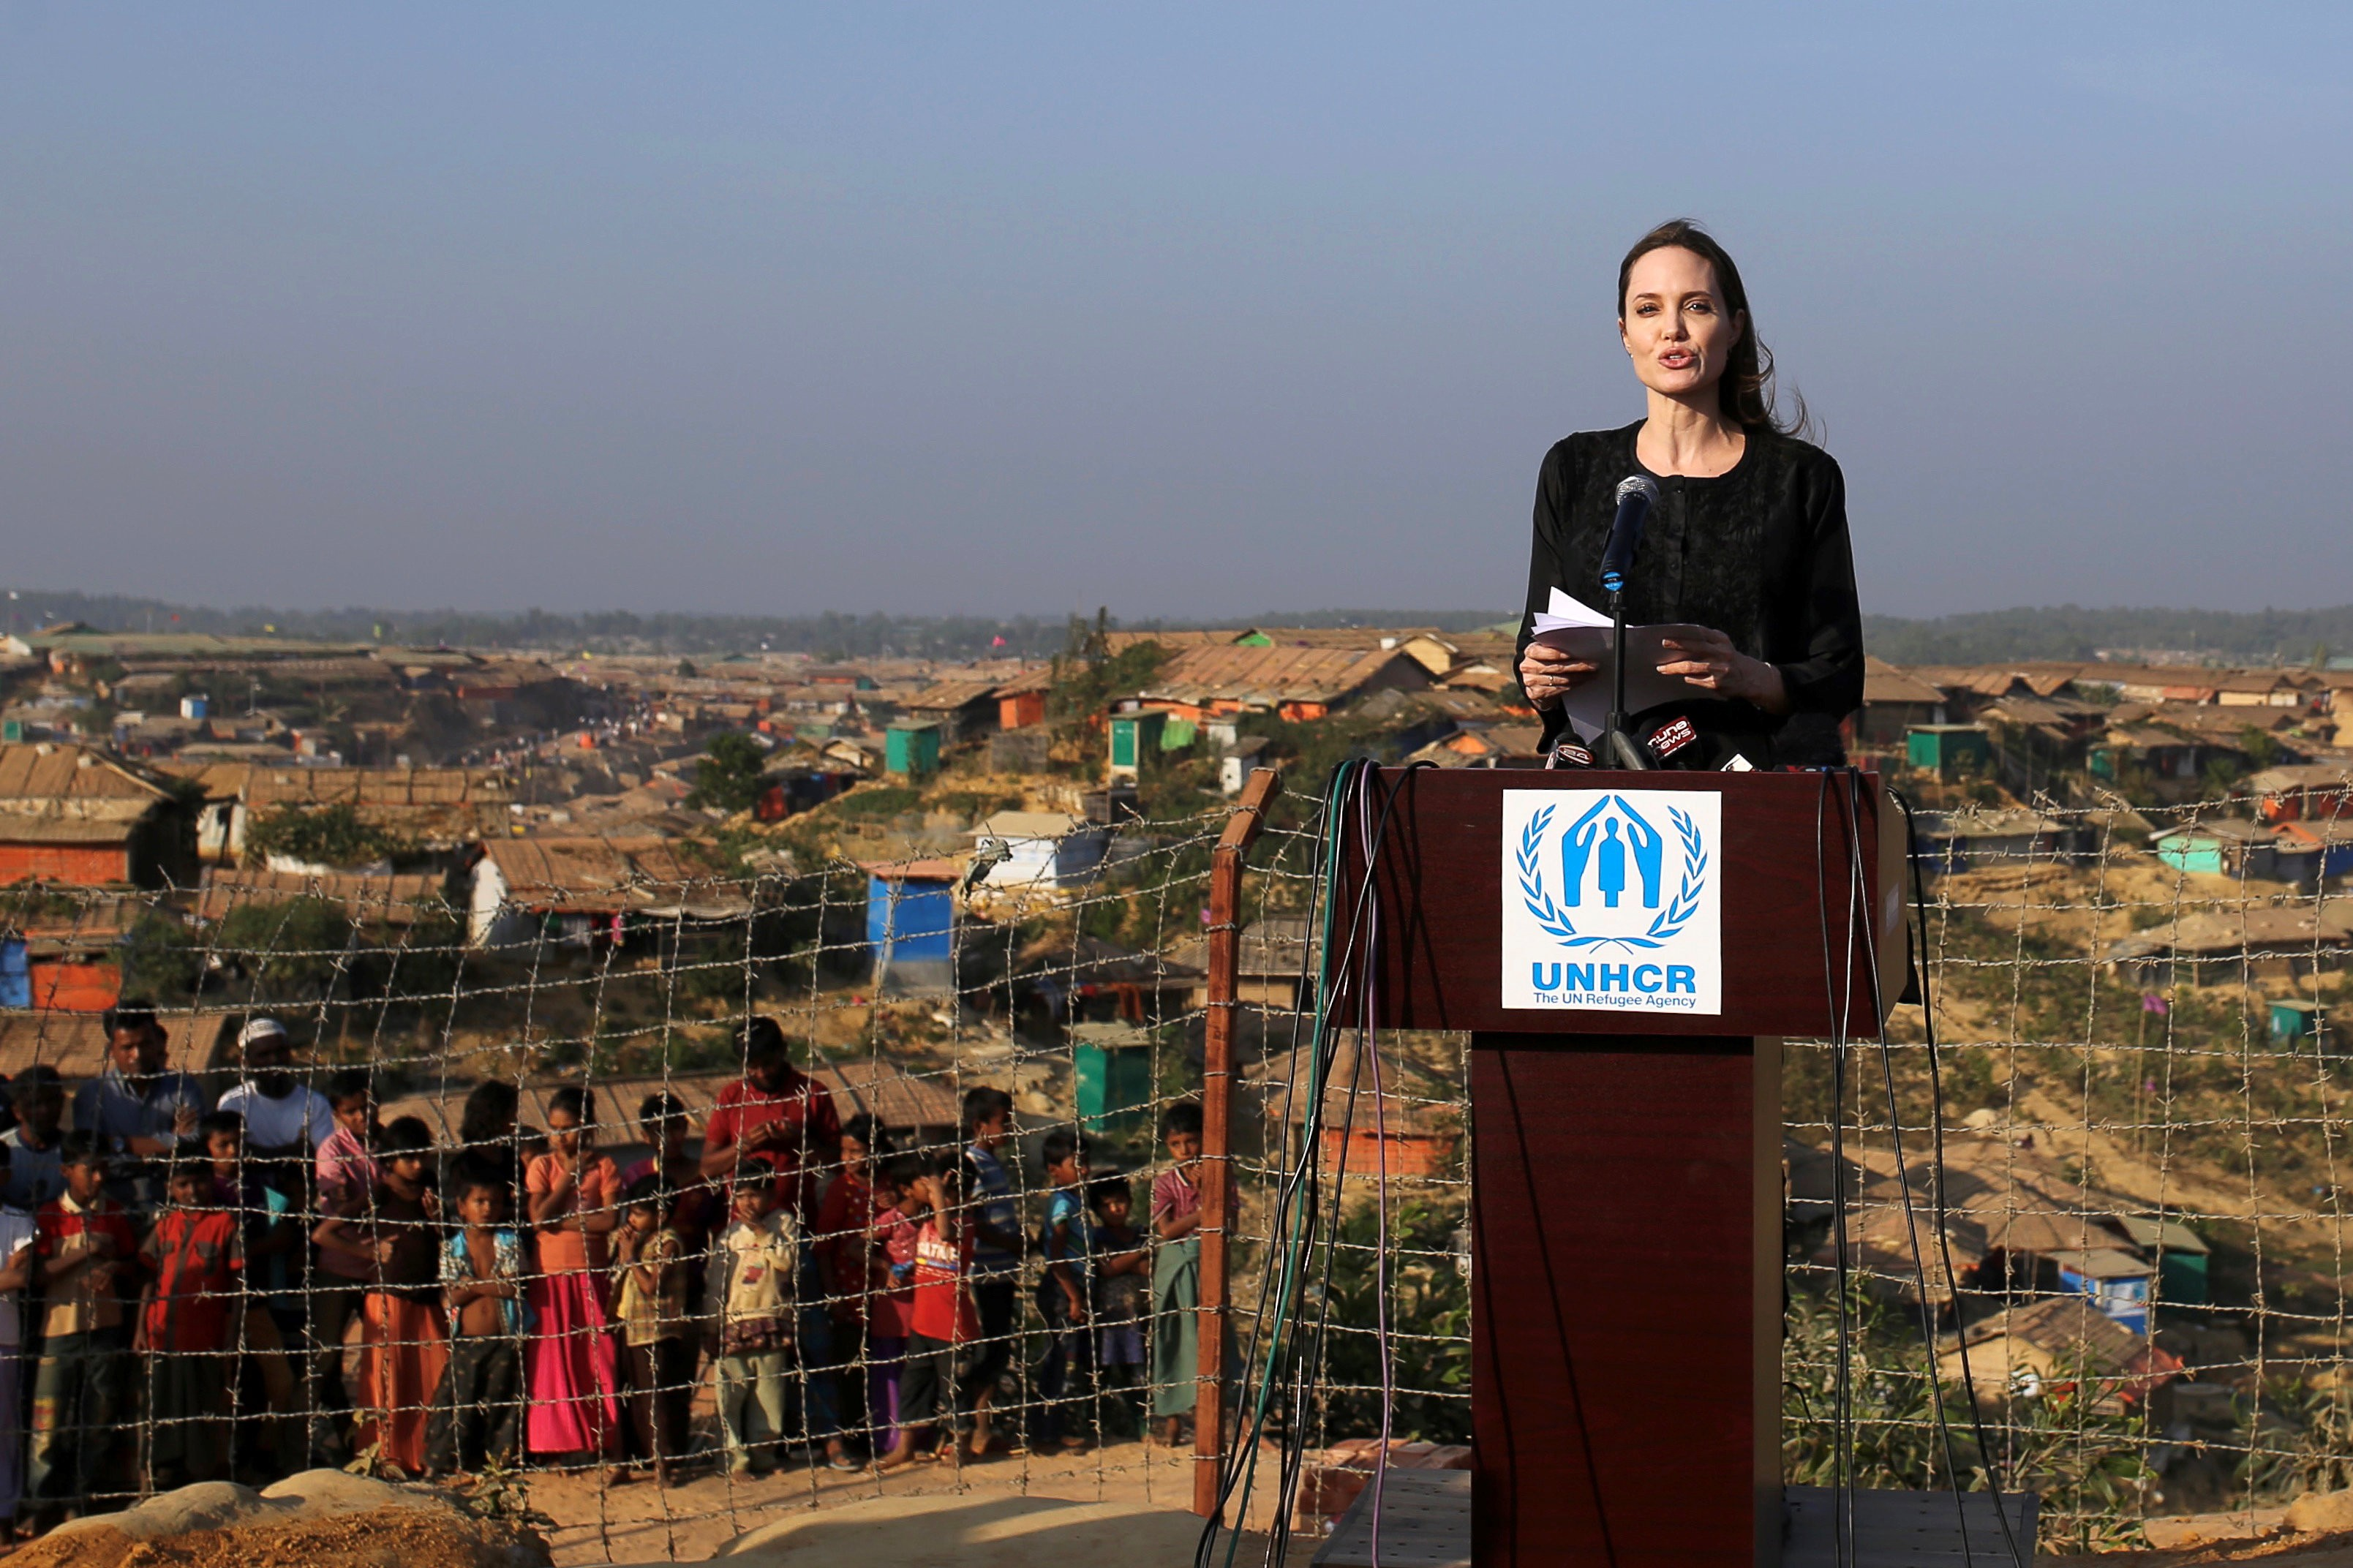 Actor Angelina Jolie joins in a press briefing as she visits Kutupalong refugee camp in Cox's Bazar, Bangladesh, February 5, 2018. (Photo: Reuters/Rehman Asad)